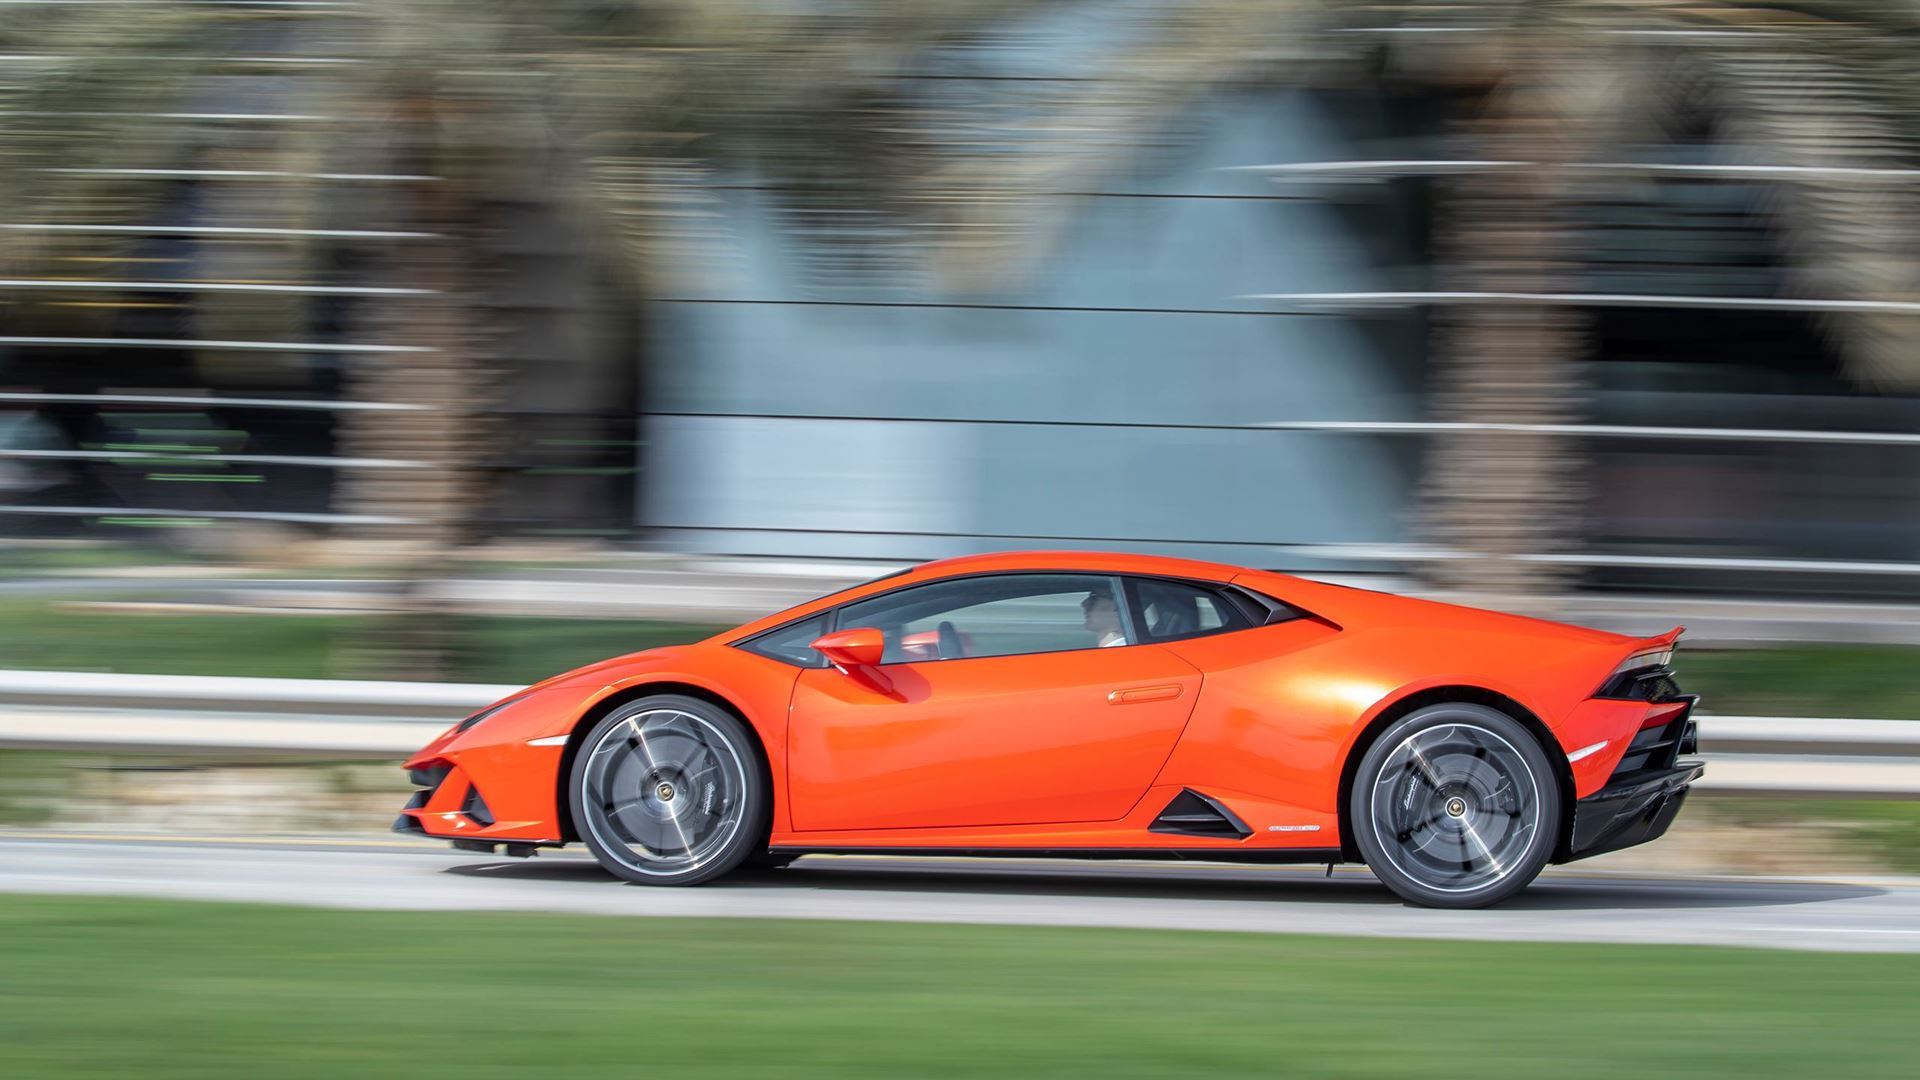 New suite of connected services for the Lamborghini Huracán EVO range: Automobili Lamborghini is first to incorporate comprehensive in-car control by Amazon Alexa - Image 4